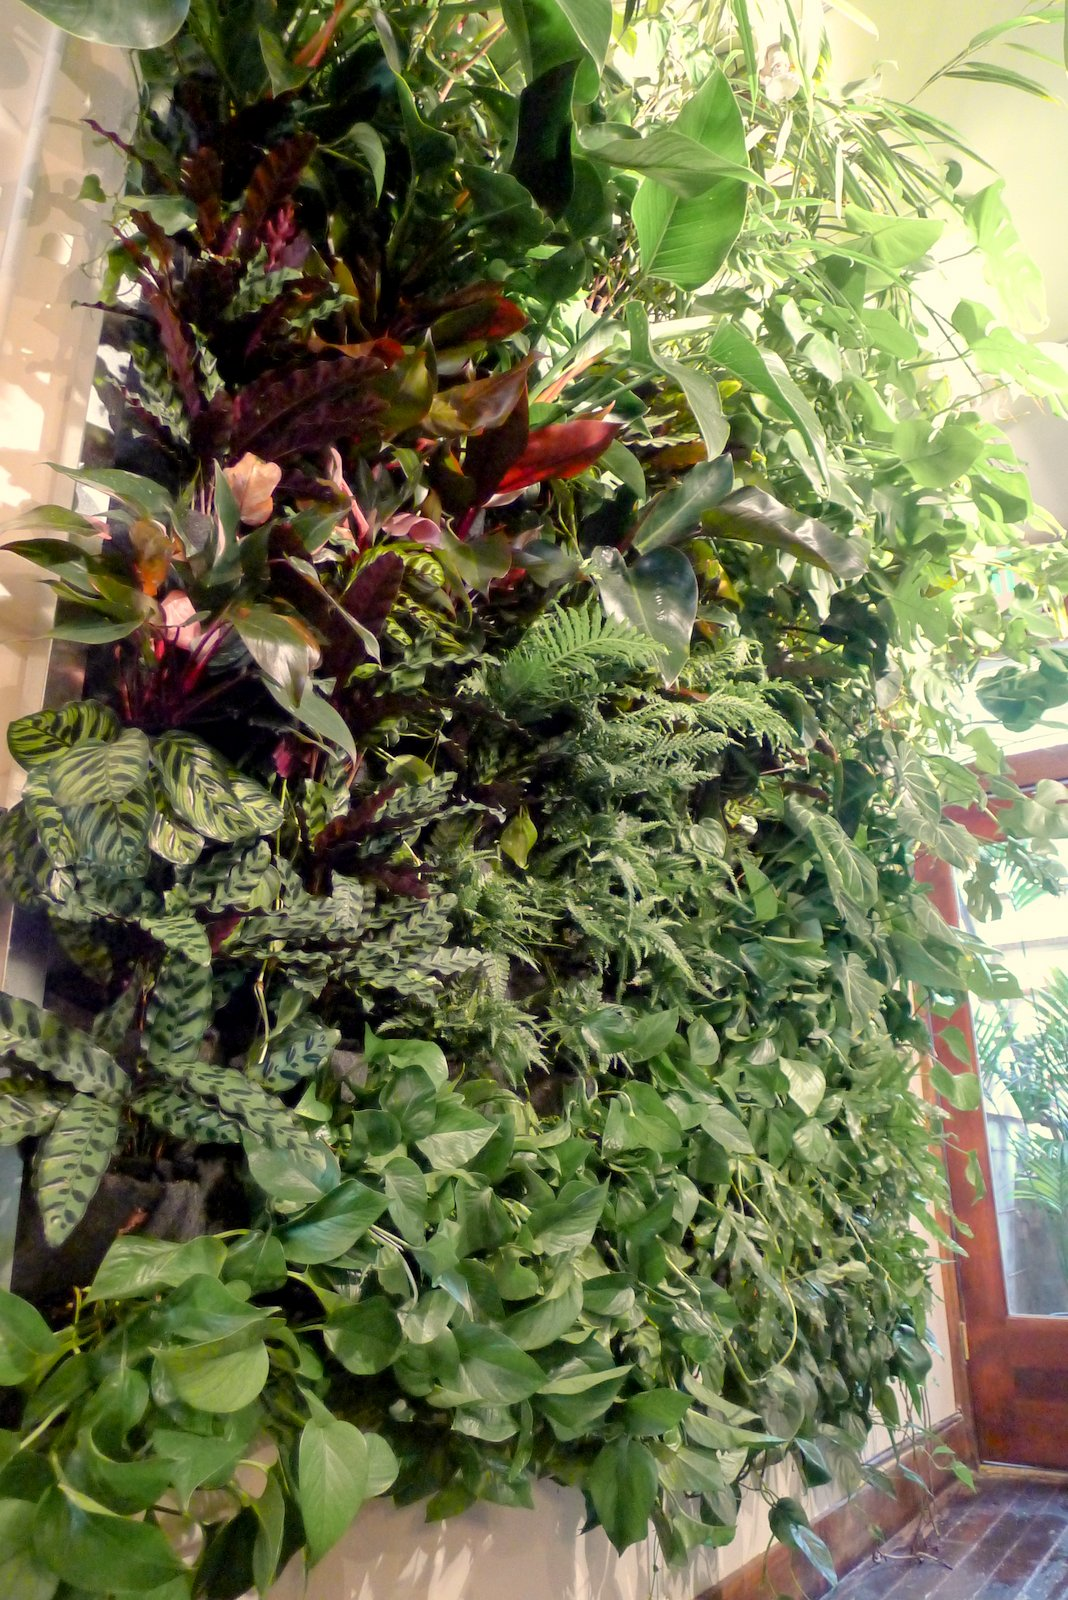 Garden Bush: Plants On Walls Vertical Garden Systems: Population Hair